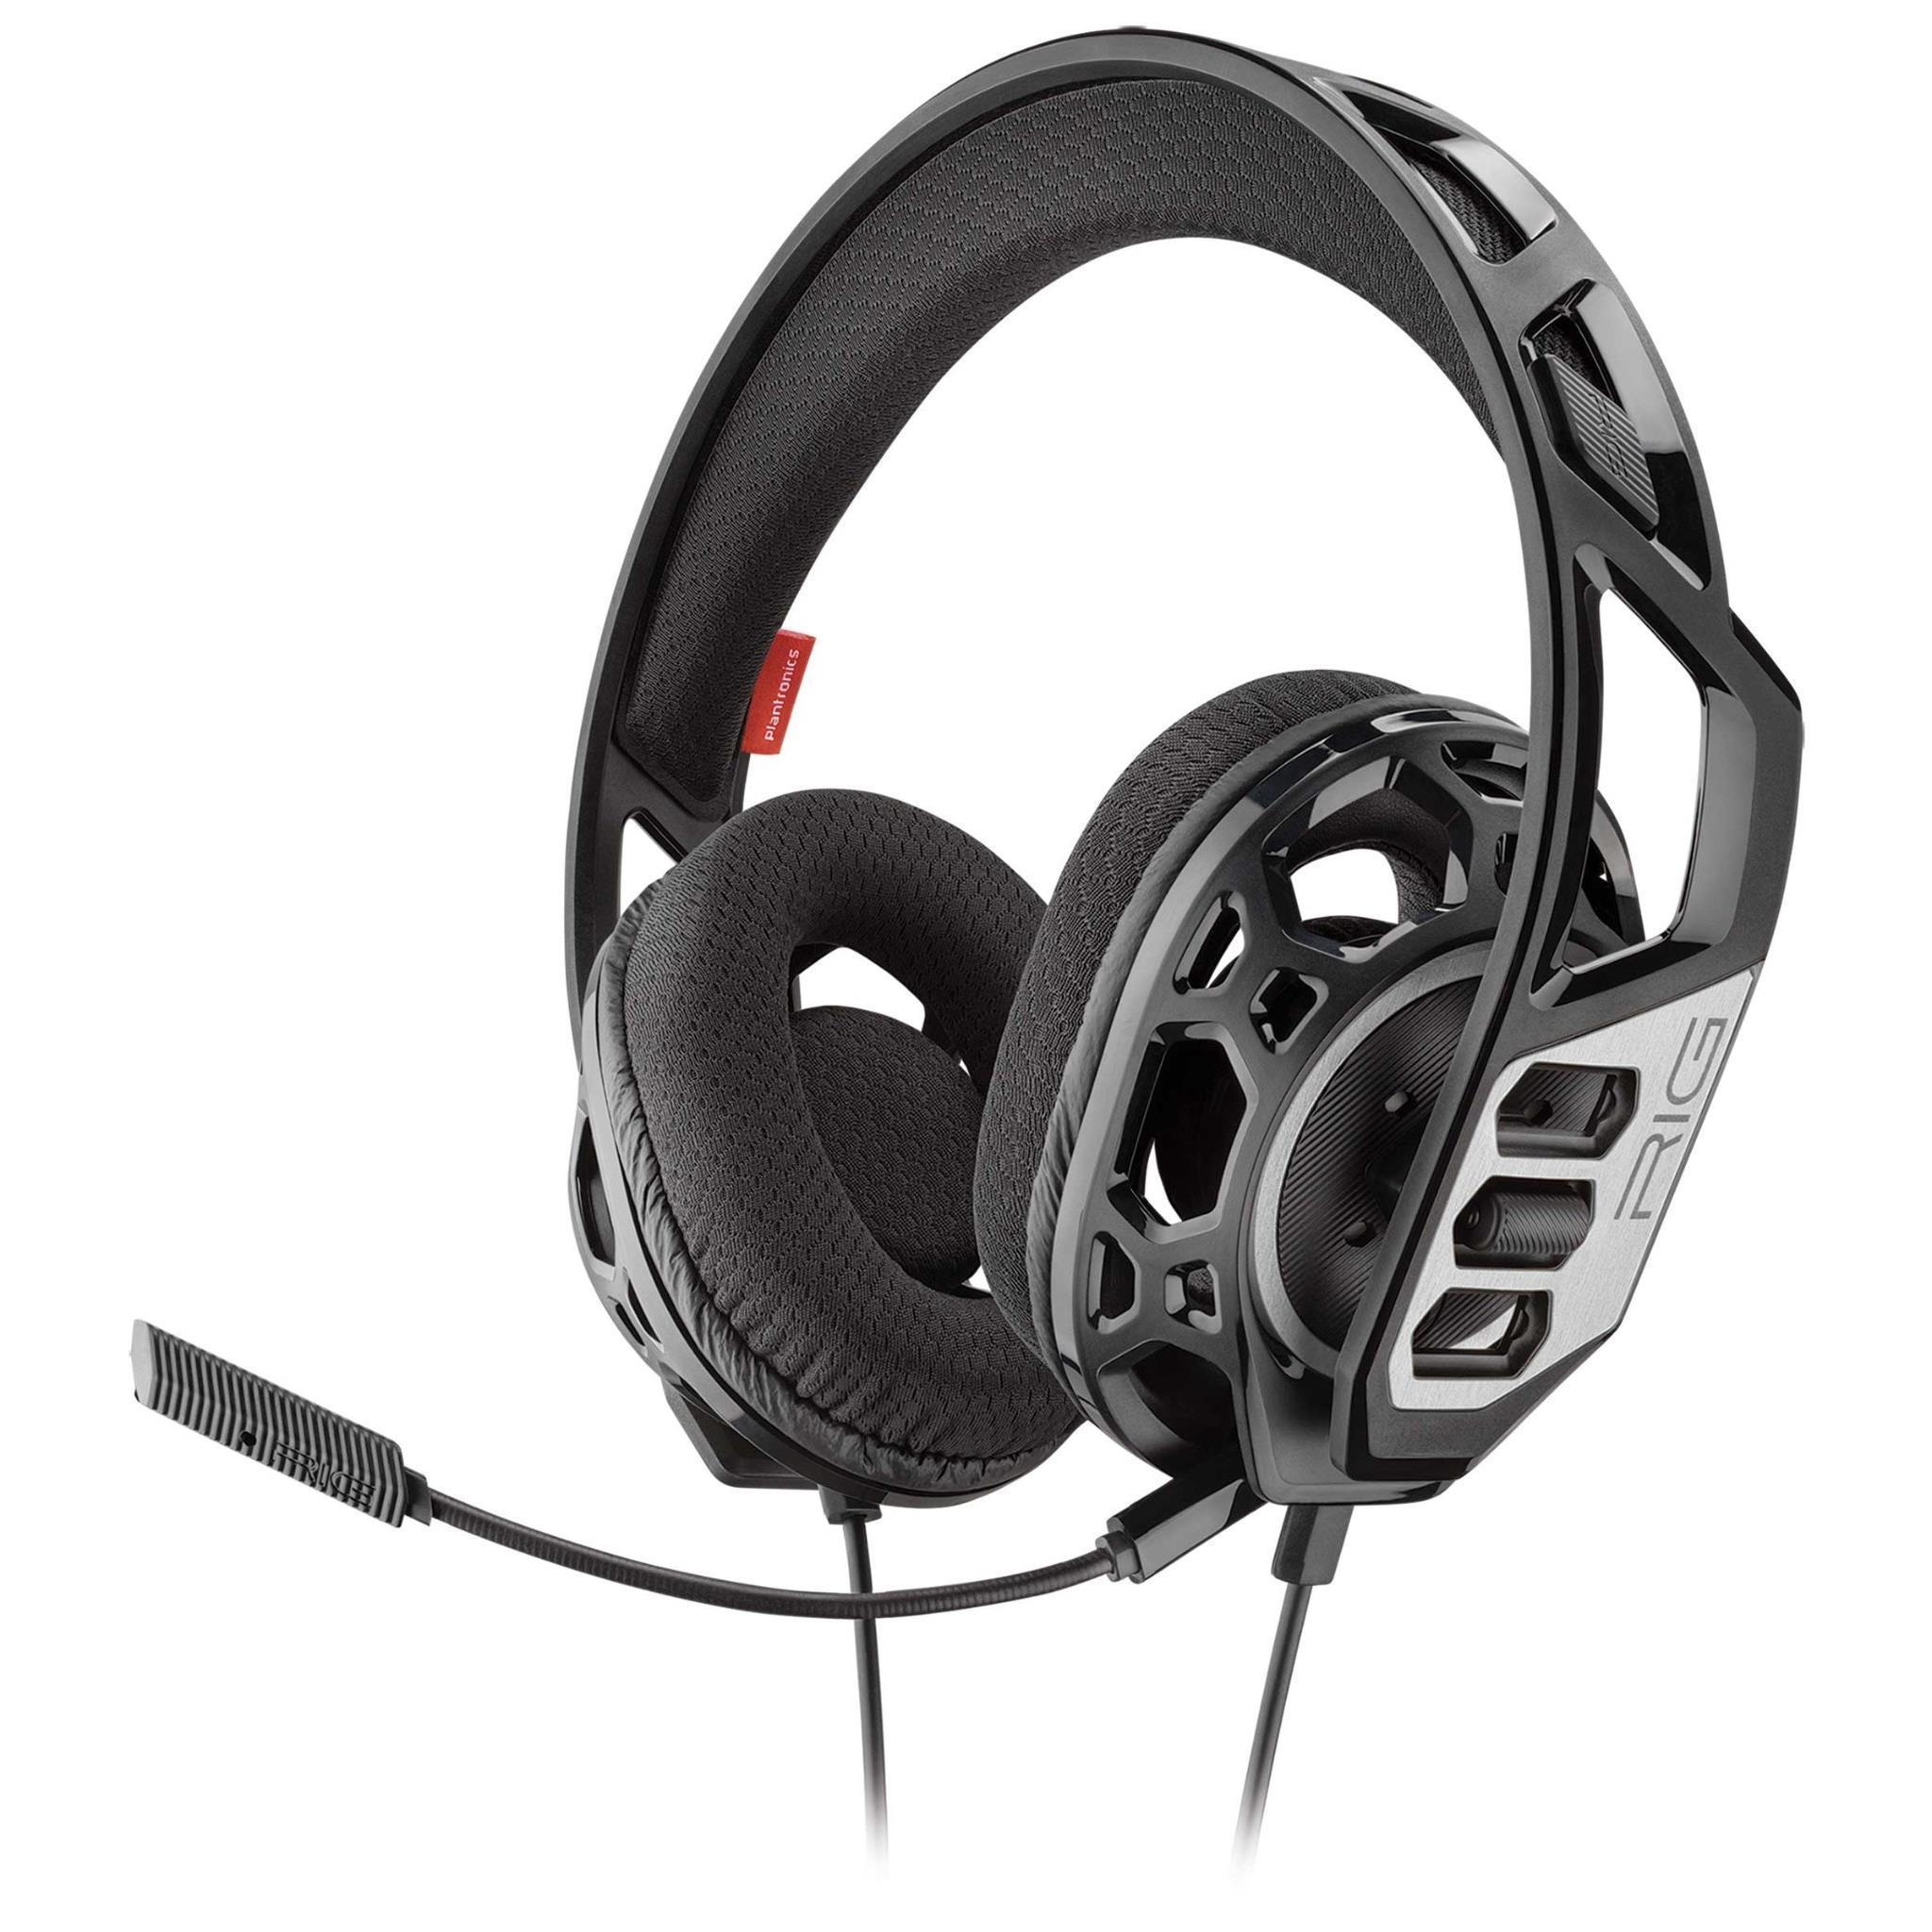 RIG 300 HC Wired Gaming Headset